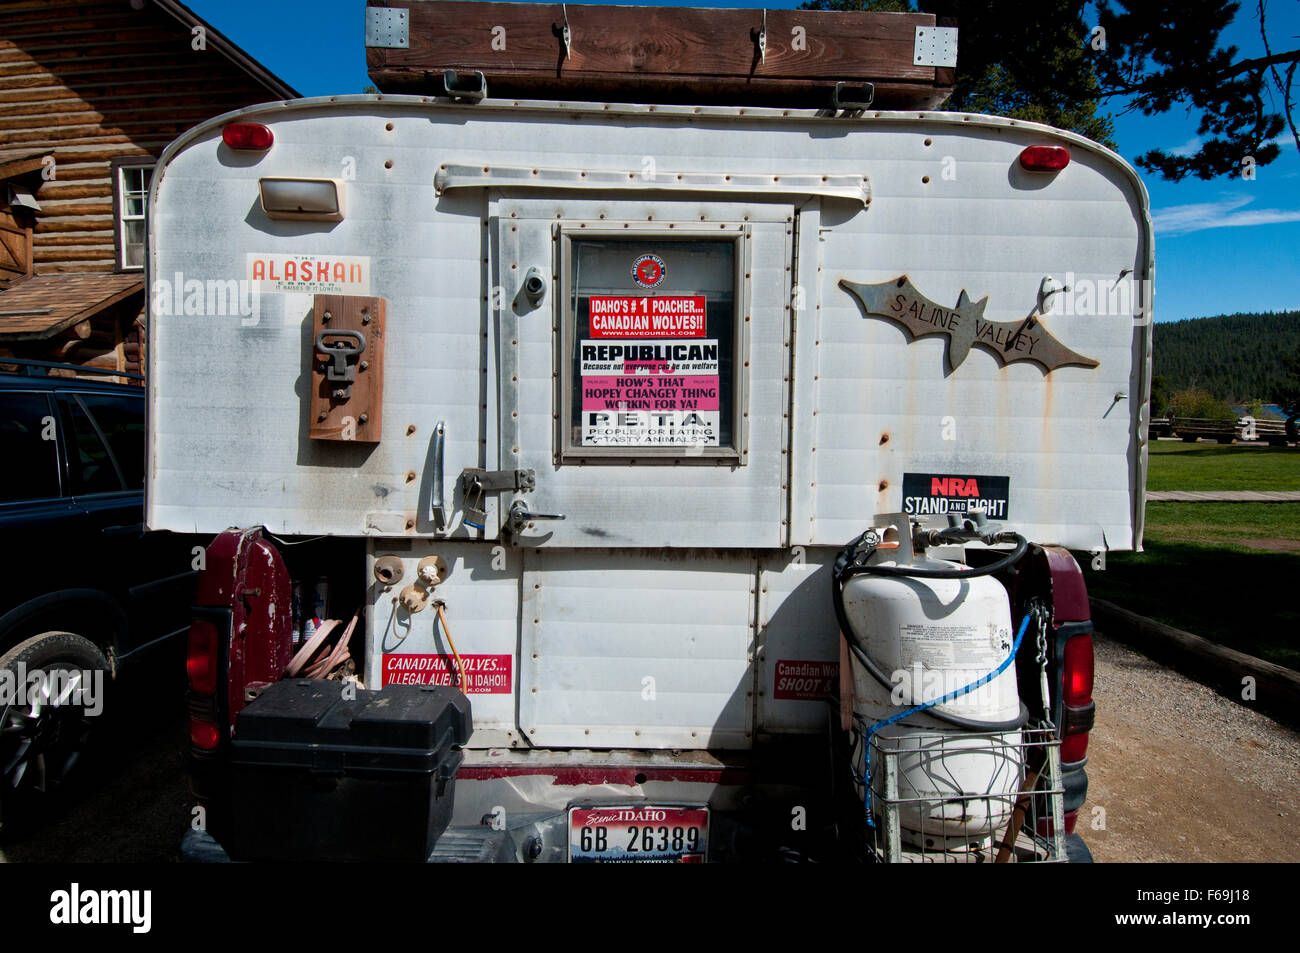 Right-wing bumper stickers on the back of a truck camper from Idaho - Stock Image